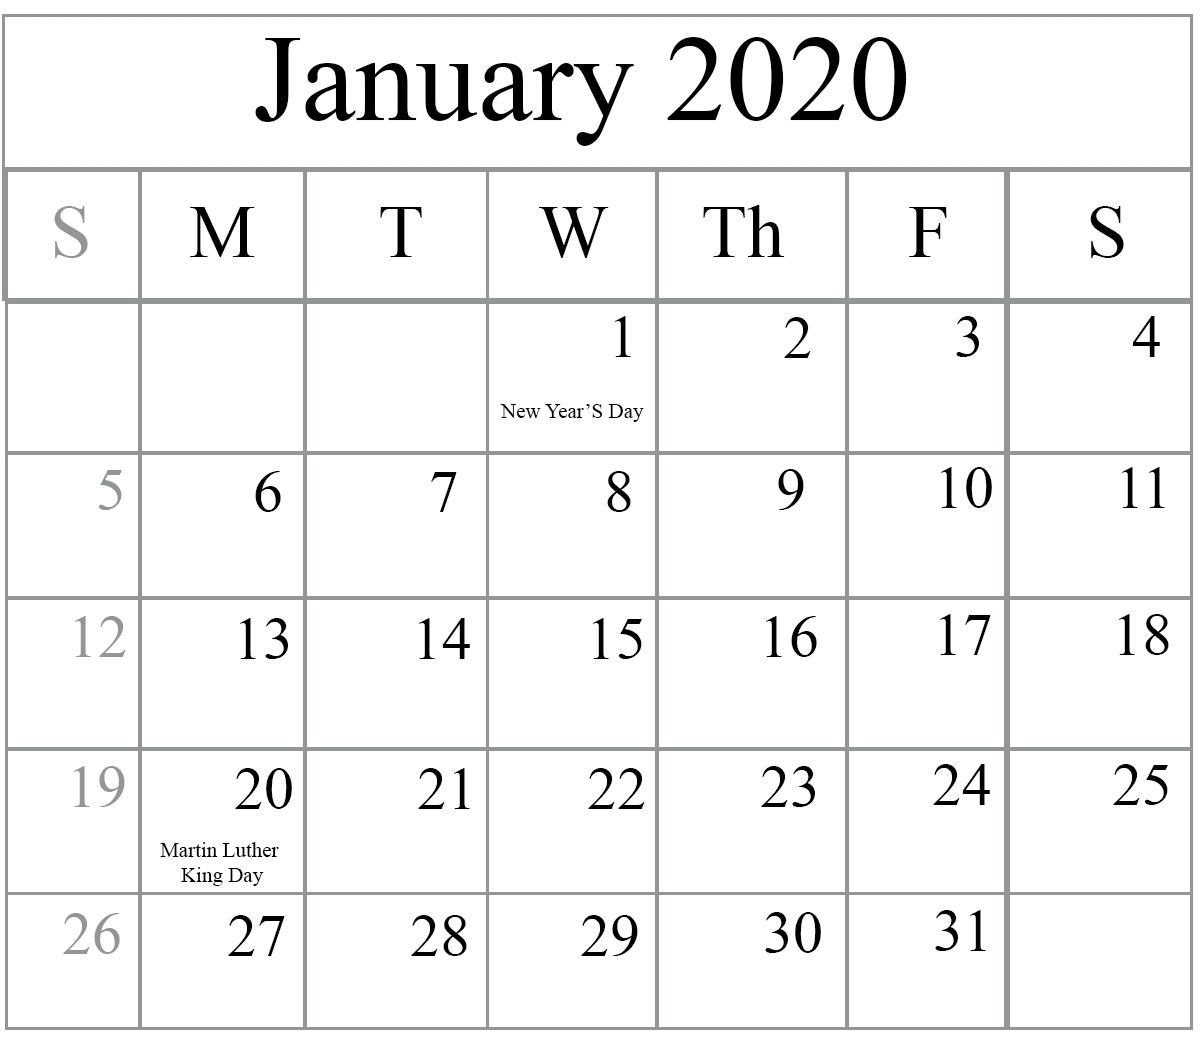 Free January 2020 Printable Calendar In Pdf, Excel & Word in Free 2020 Printable Calendars Without Downloading